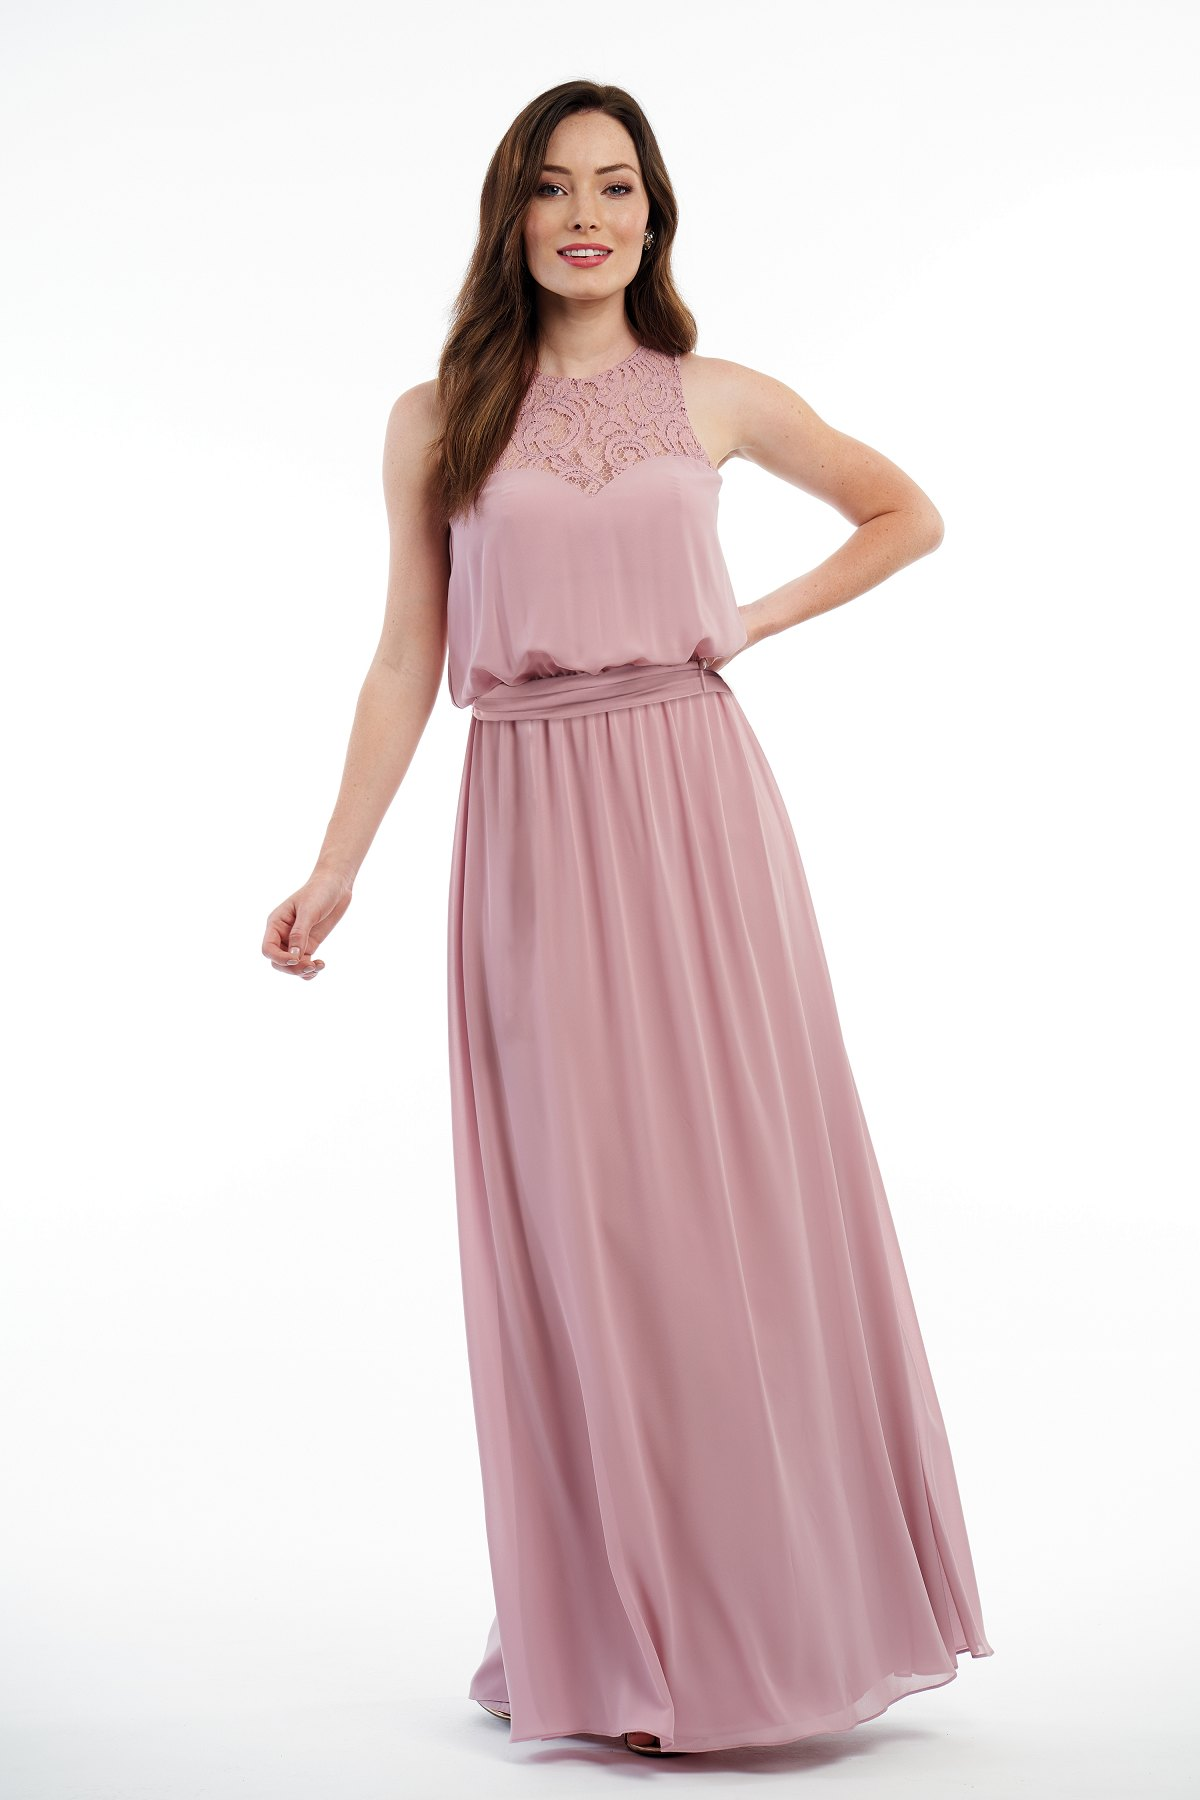 P216010 -  Beautiful charlotte chiffon and lace floor length bridesmaid dress with a pretty jewel neckline and flowy bodice. Detailed gathers on the skirt and a belt that wraps around the waist to create a bow on the back.    Available in 18 colors